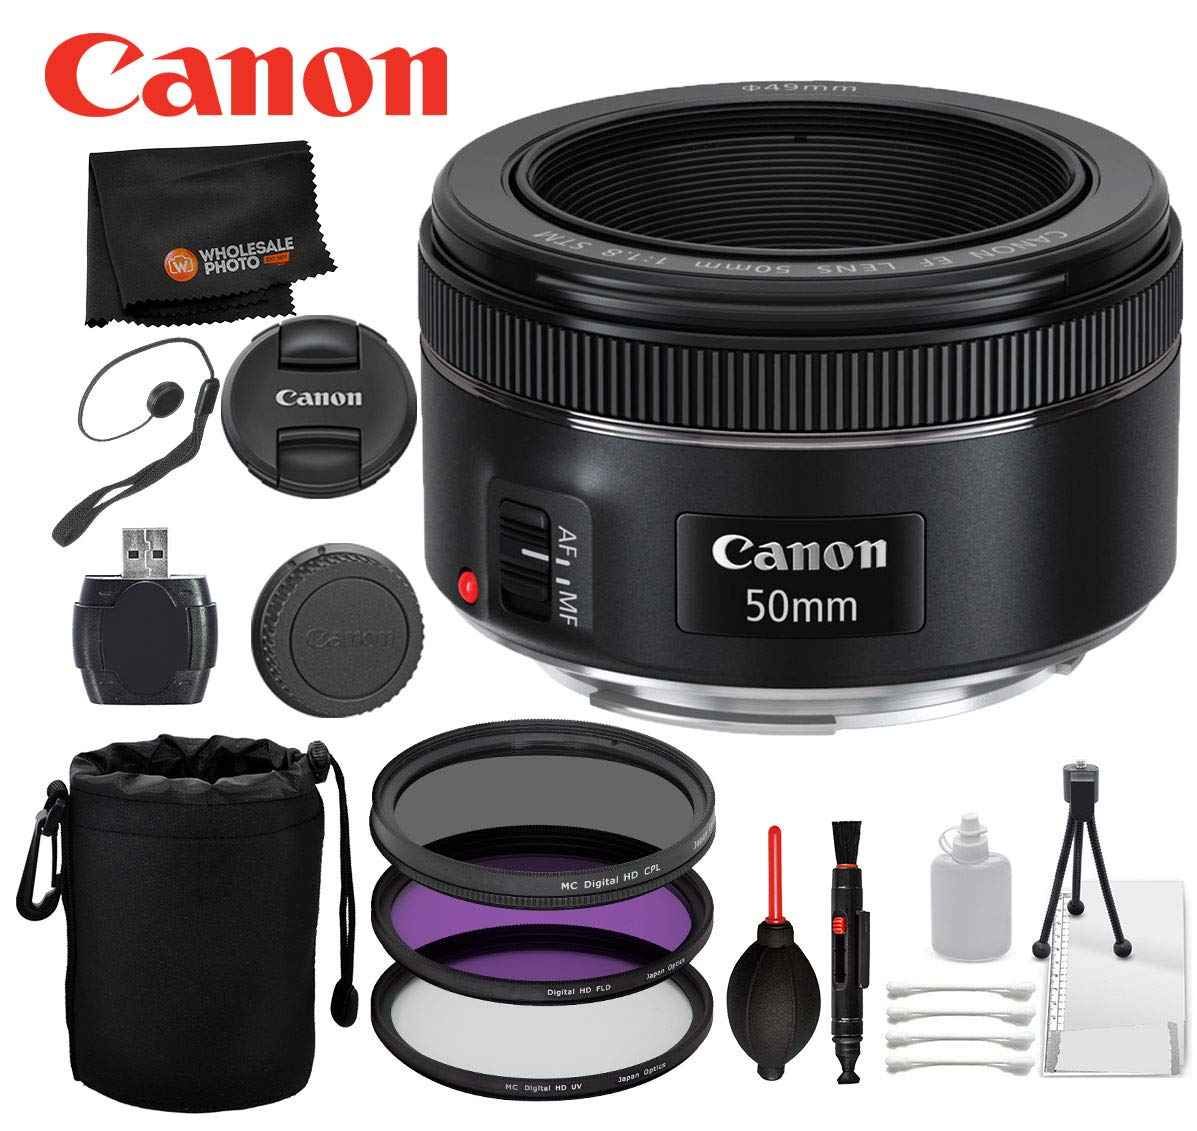 Canon EF 50mm f/1.8 STM Lens with Professional Bundle Package Deal Kit for EOS 7D Mark II, 6D Mark II, 5D Mark IV, 5D S R, 5D S, 5D Mark III, 80D, 70D, 77D, T5, T6, T6s, T7i, SL2 by Canon